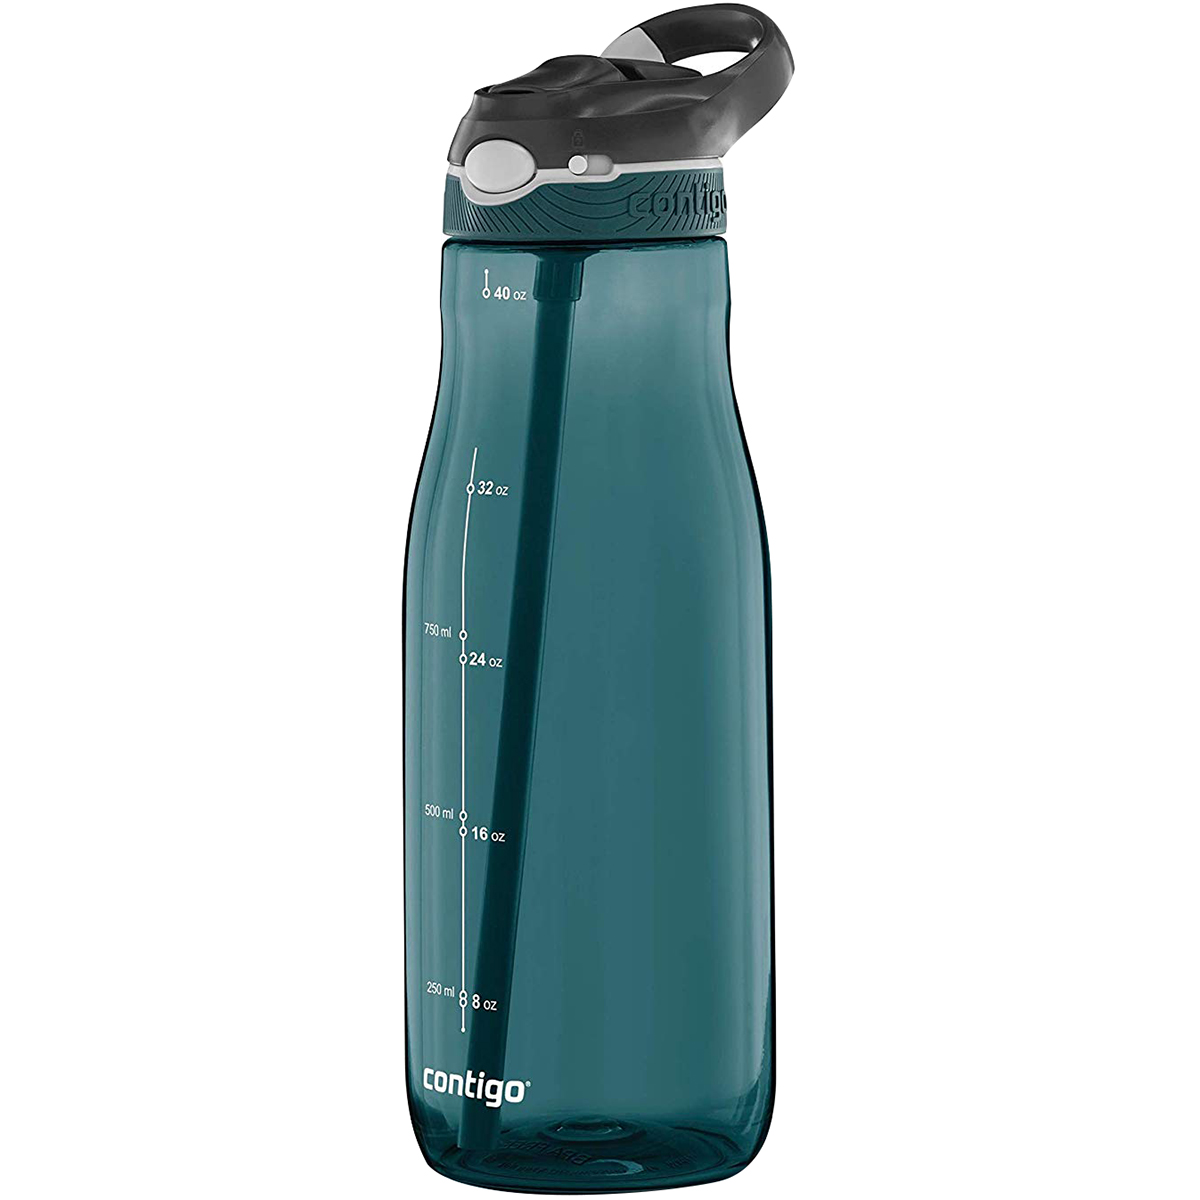 Contigo-40-oz-Ashland-Autospout-Water-Bottle thumbnail 3